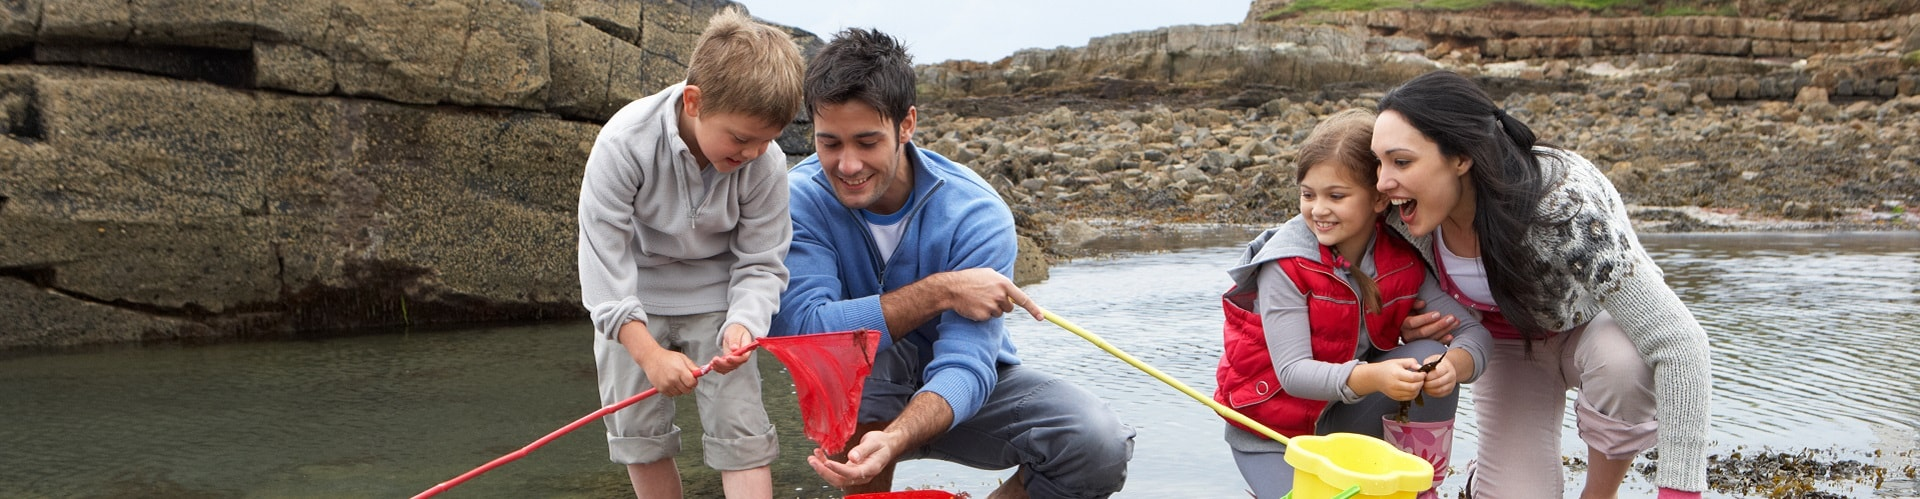 young family at beach fishing in rock pools